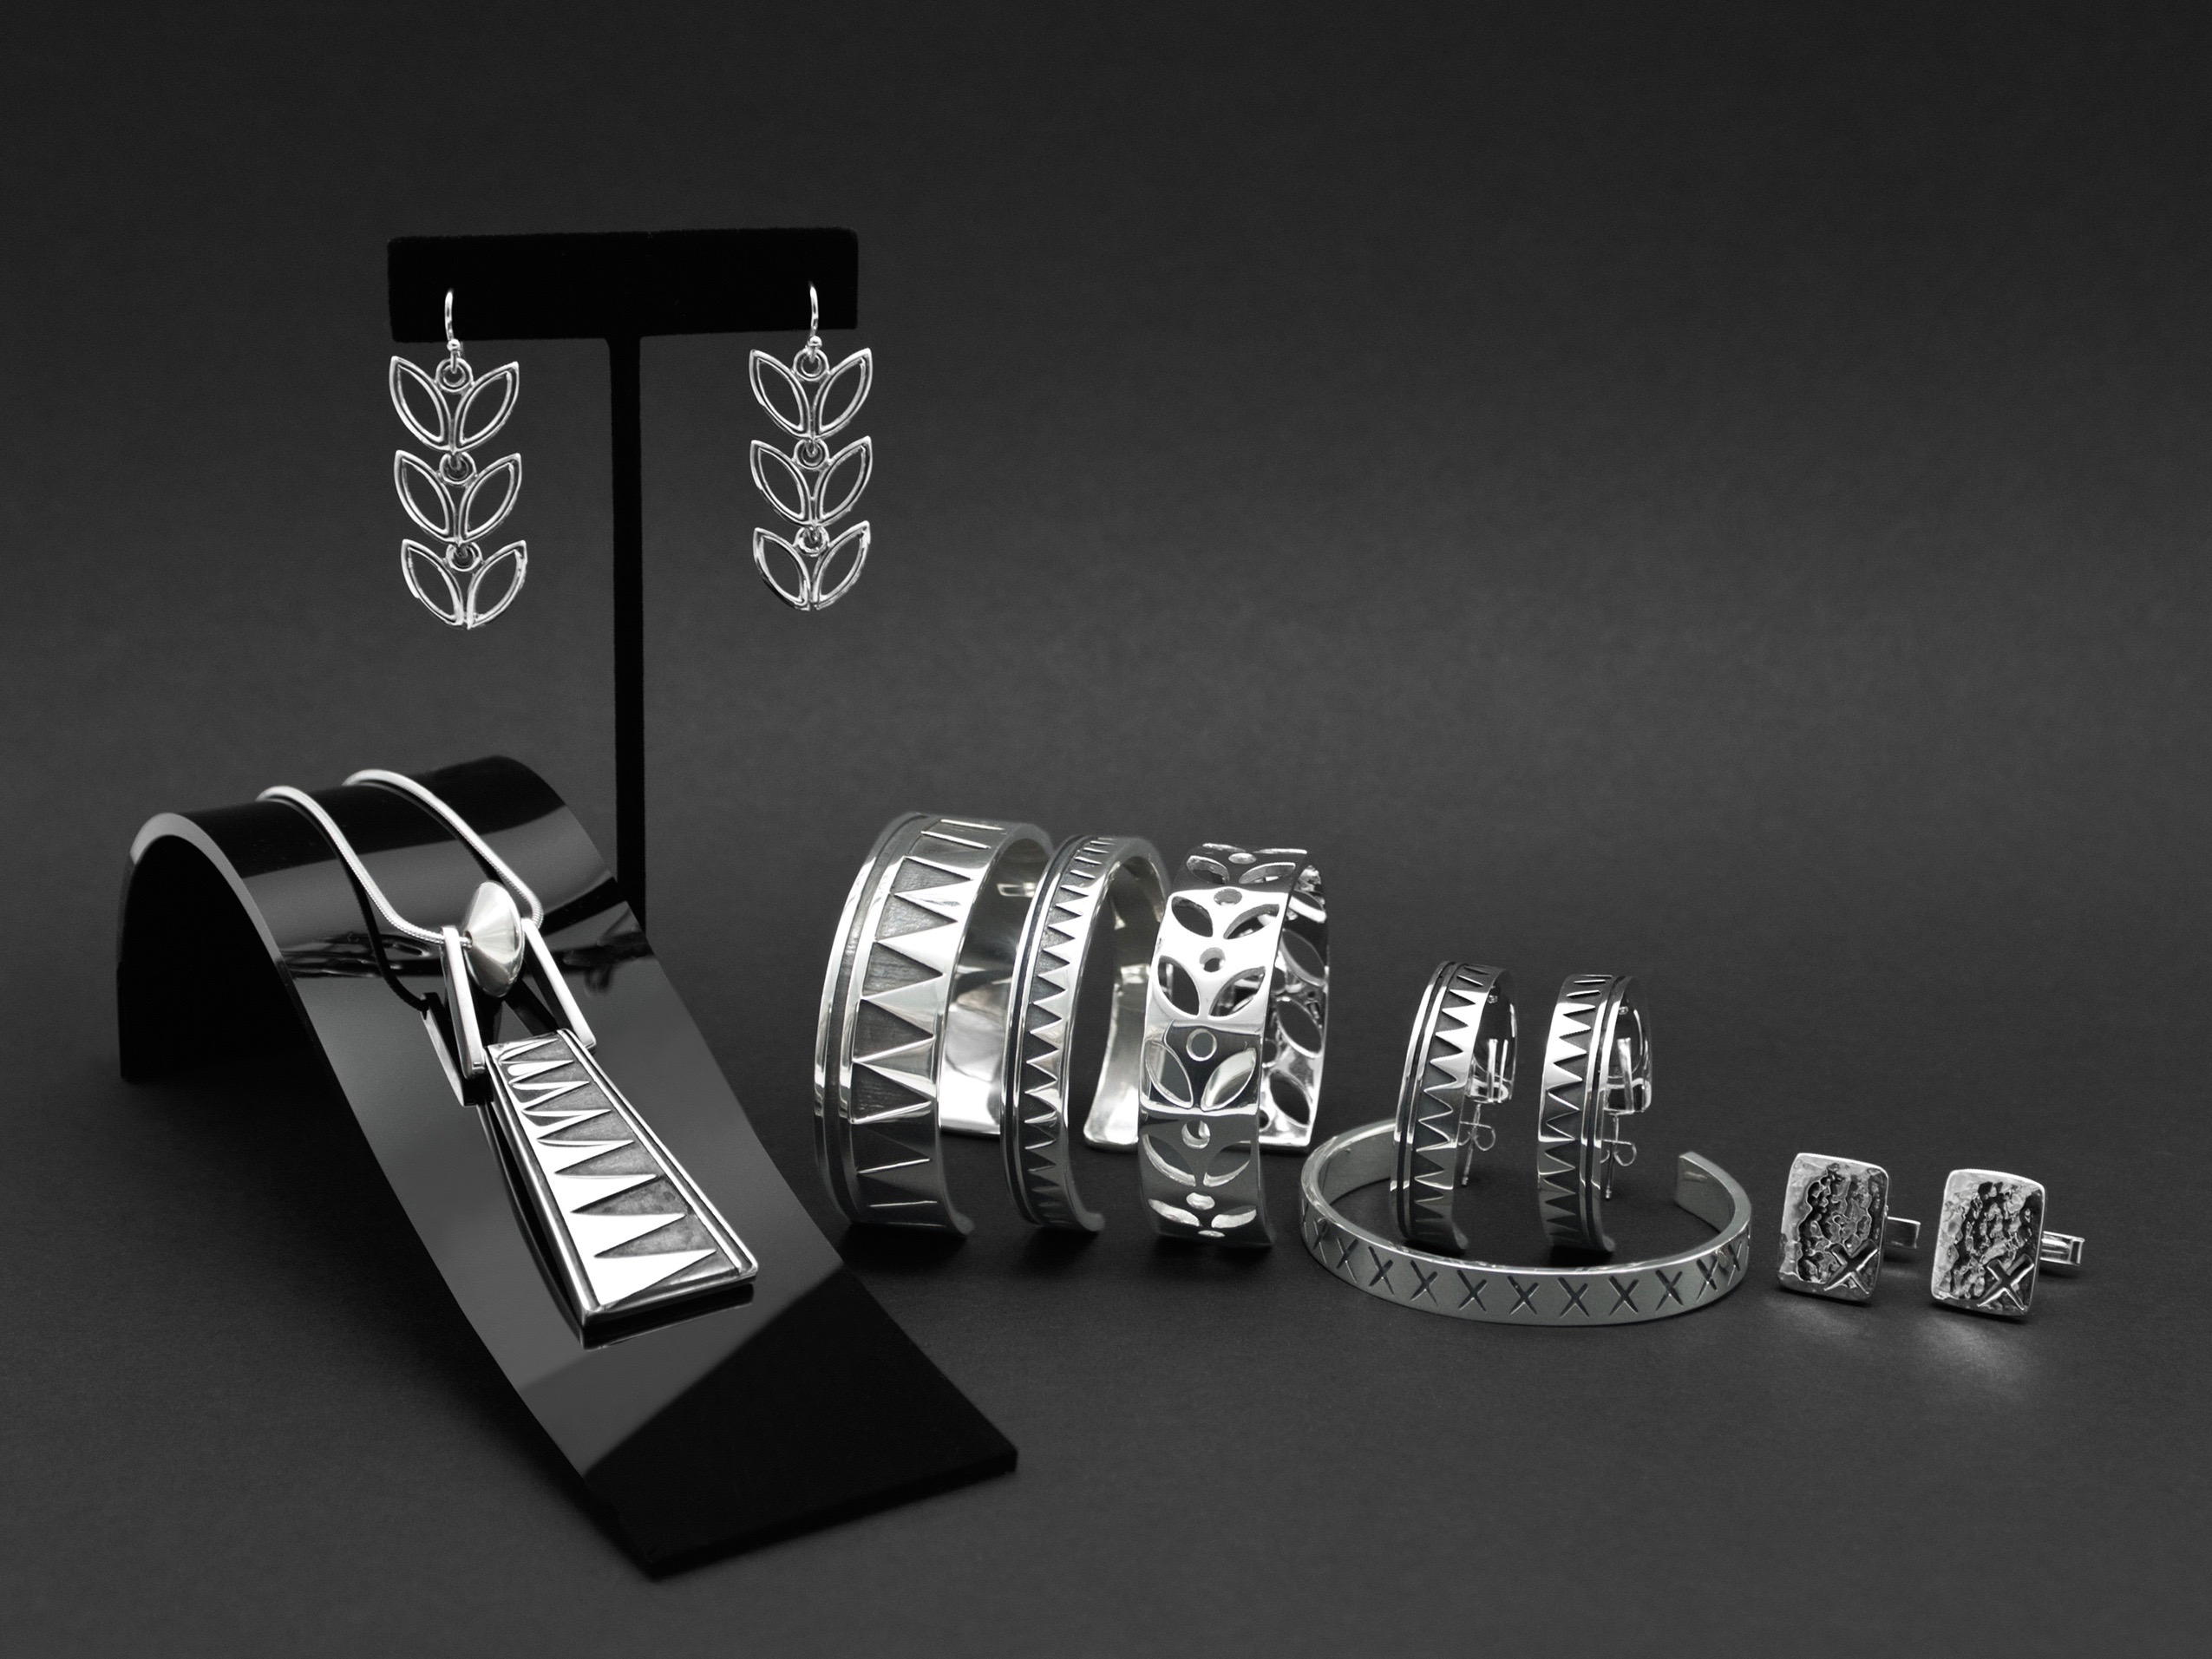 Pueblo artist Virgil Ortiz announces jewelry collaboration with Smithsonian